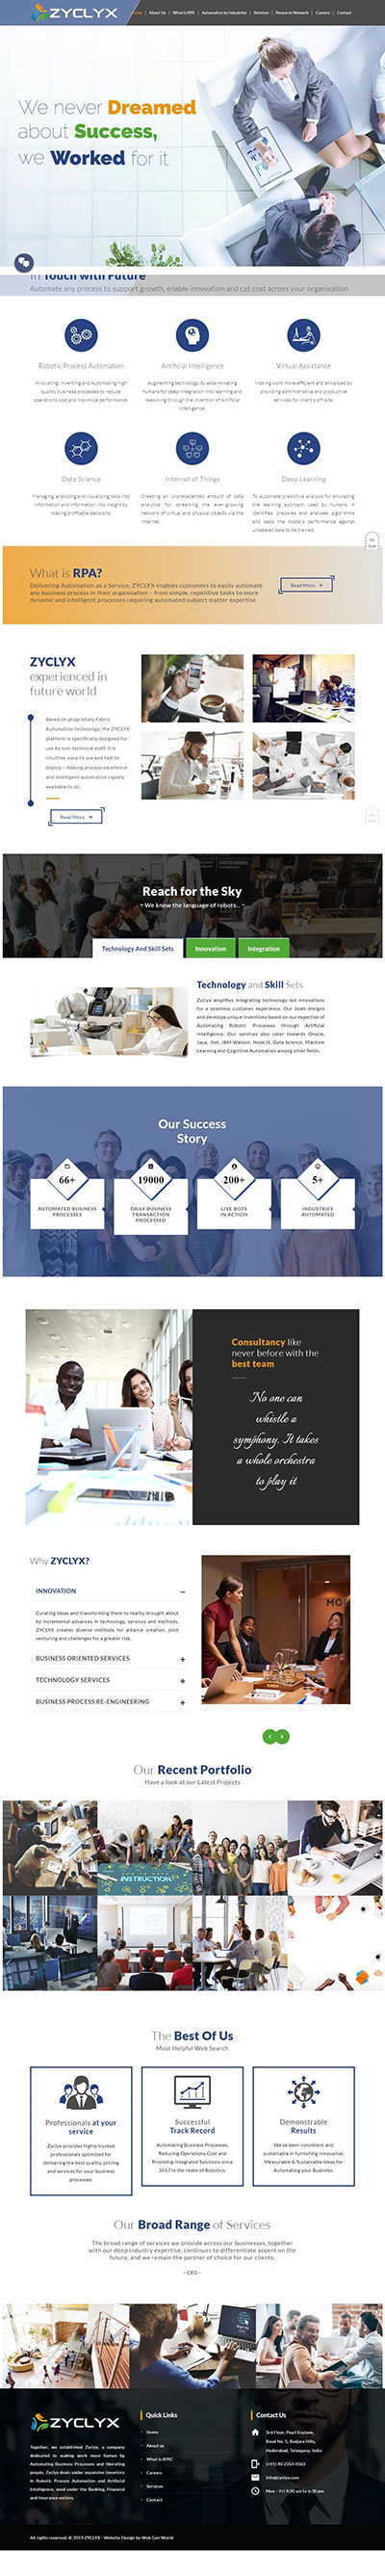 Zyclyx - Robotic Process Automation RPA and IT Consulting Company Website Designed by Web Gen World